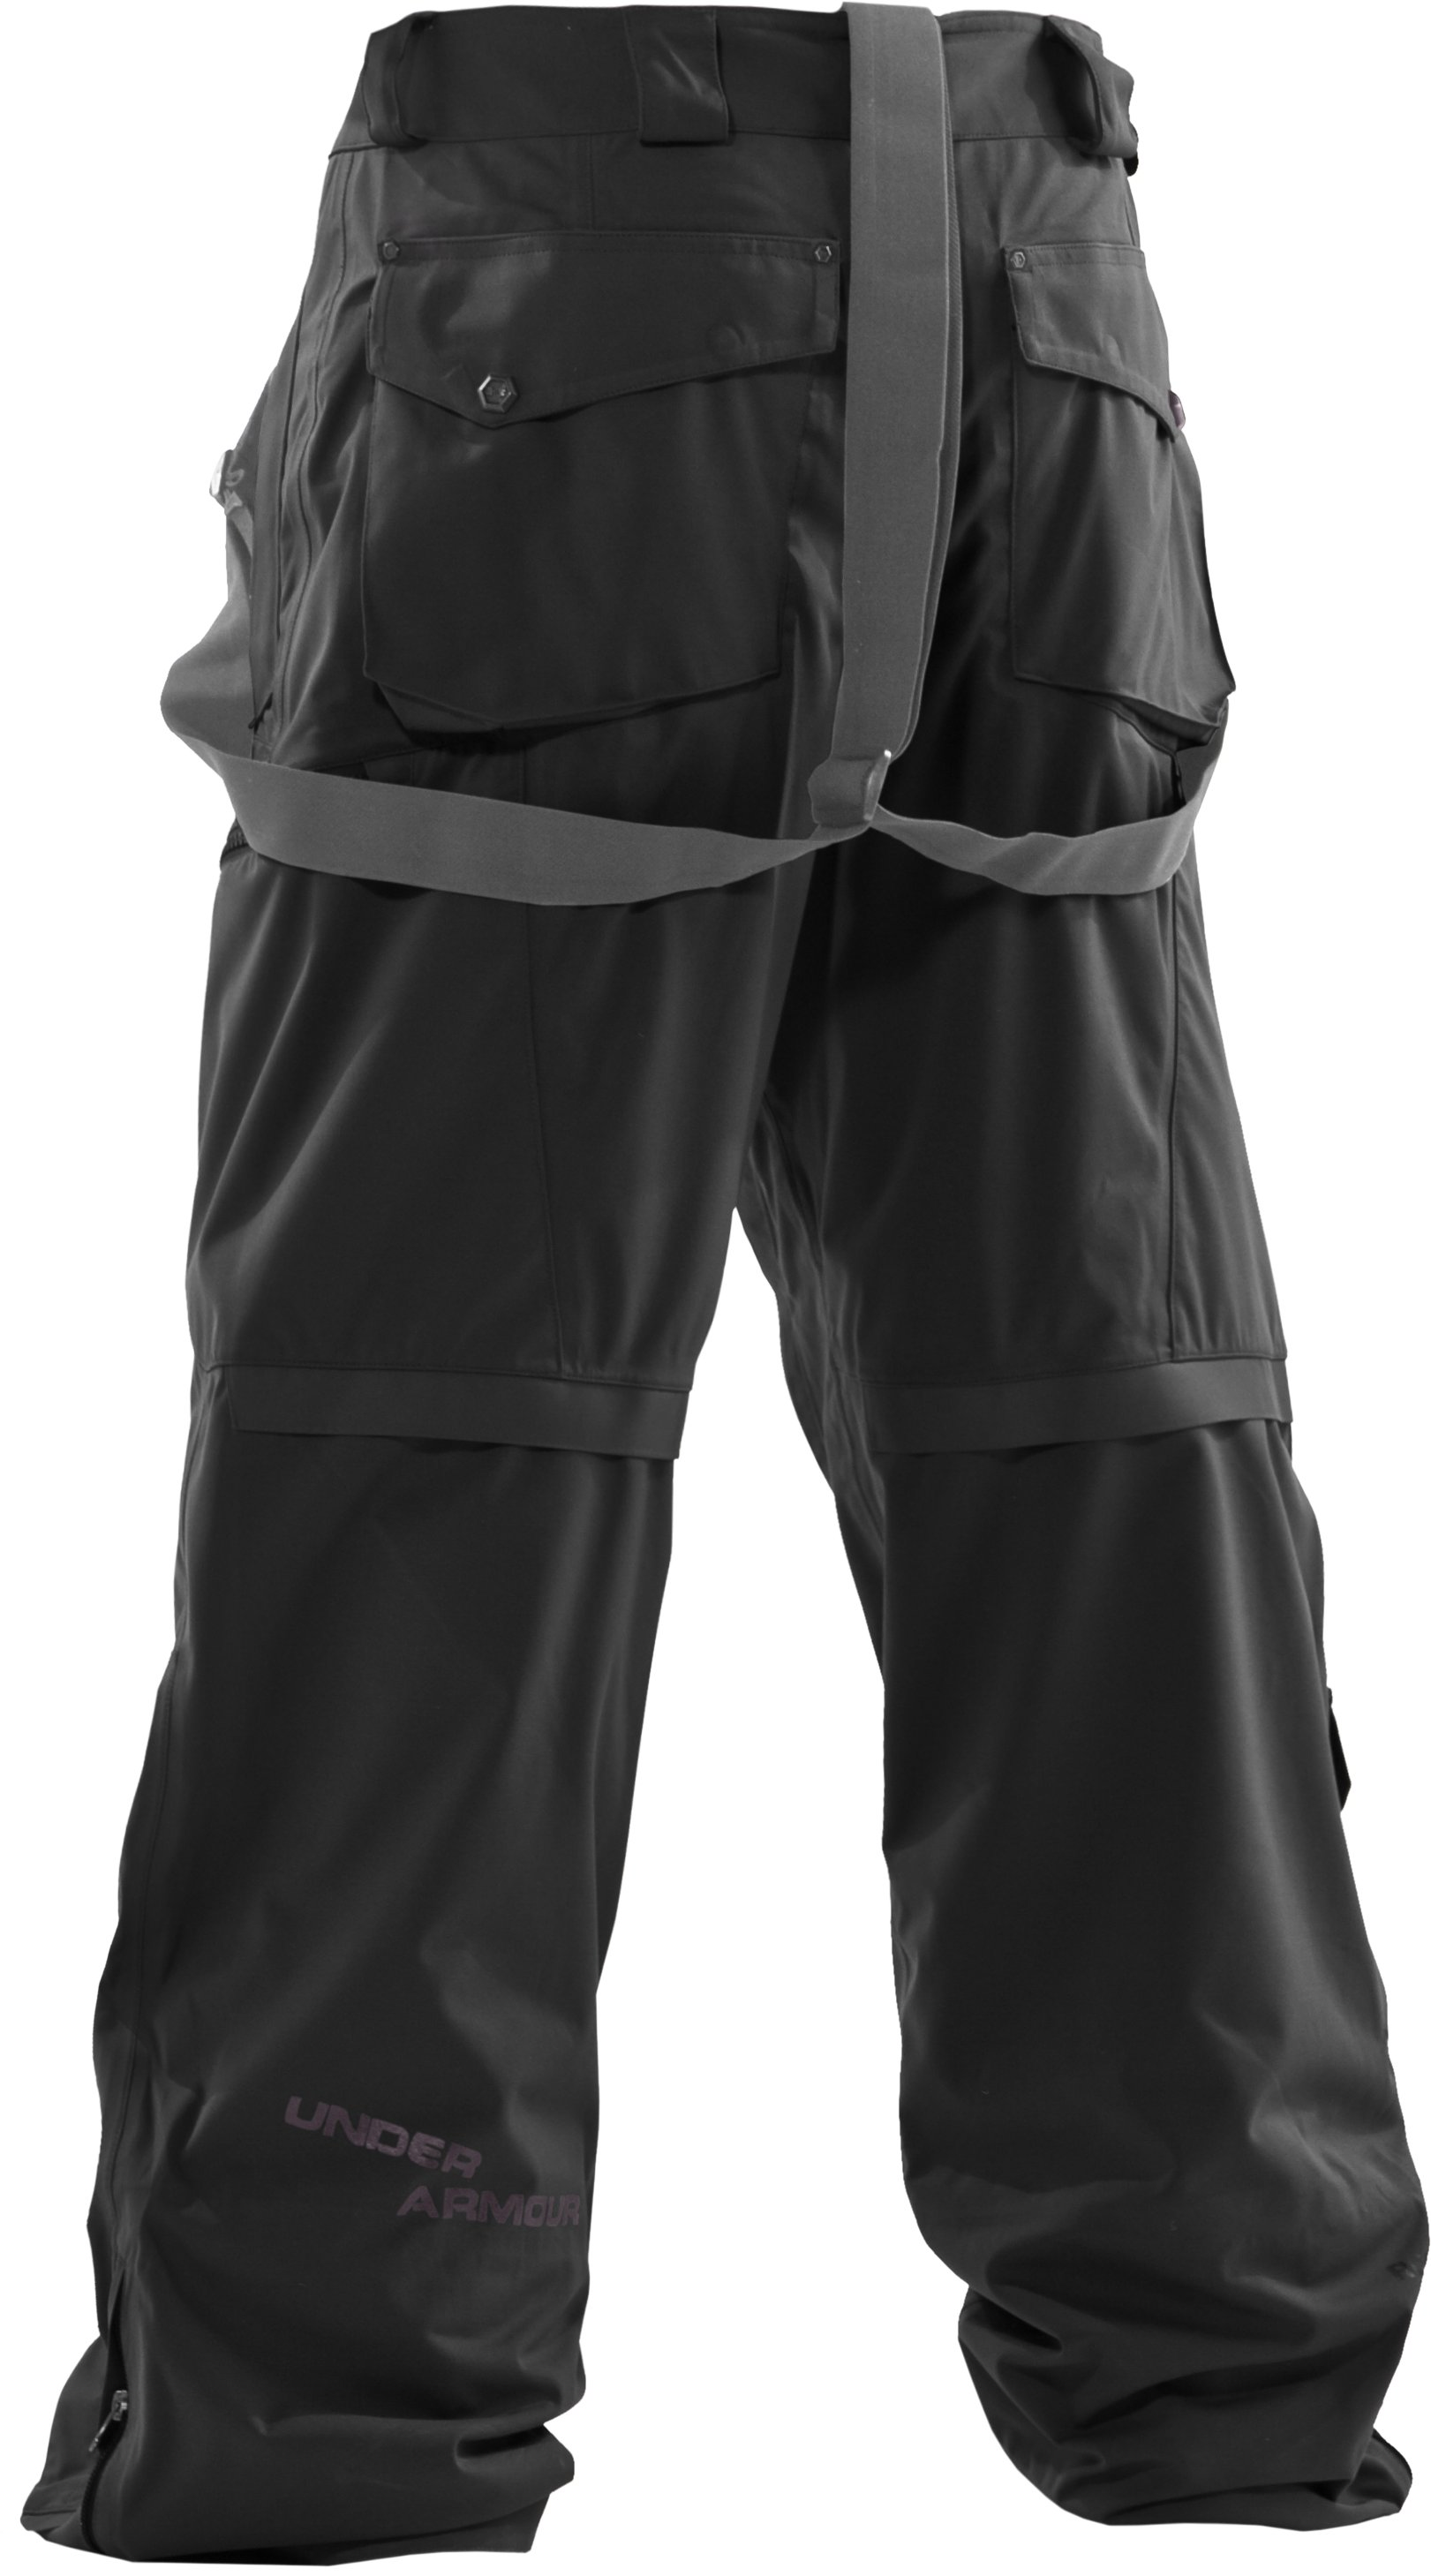 Men's UA Vigor II Waterproof Ski Pants, Black